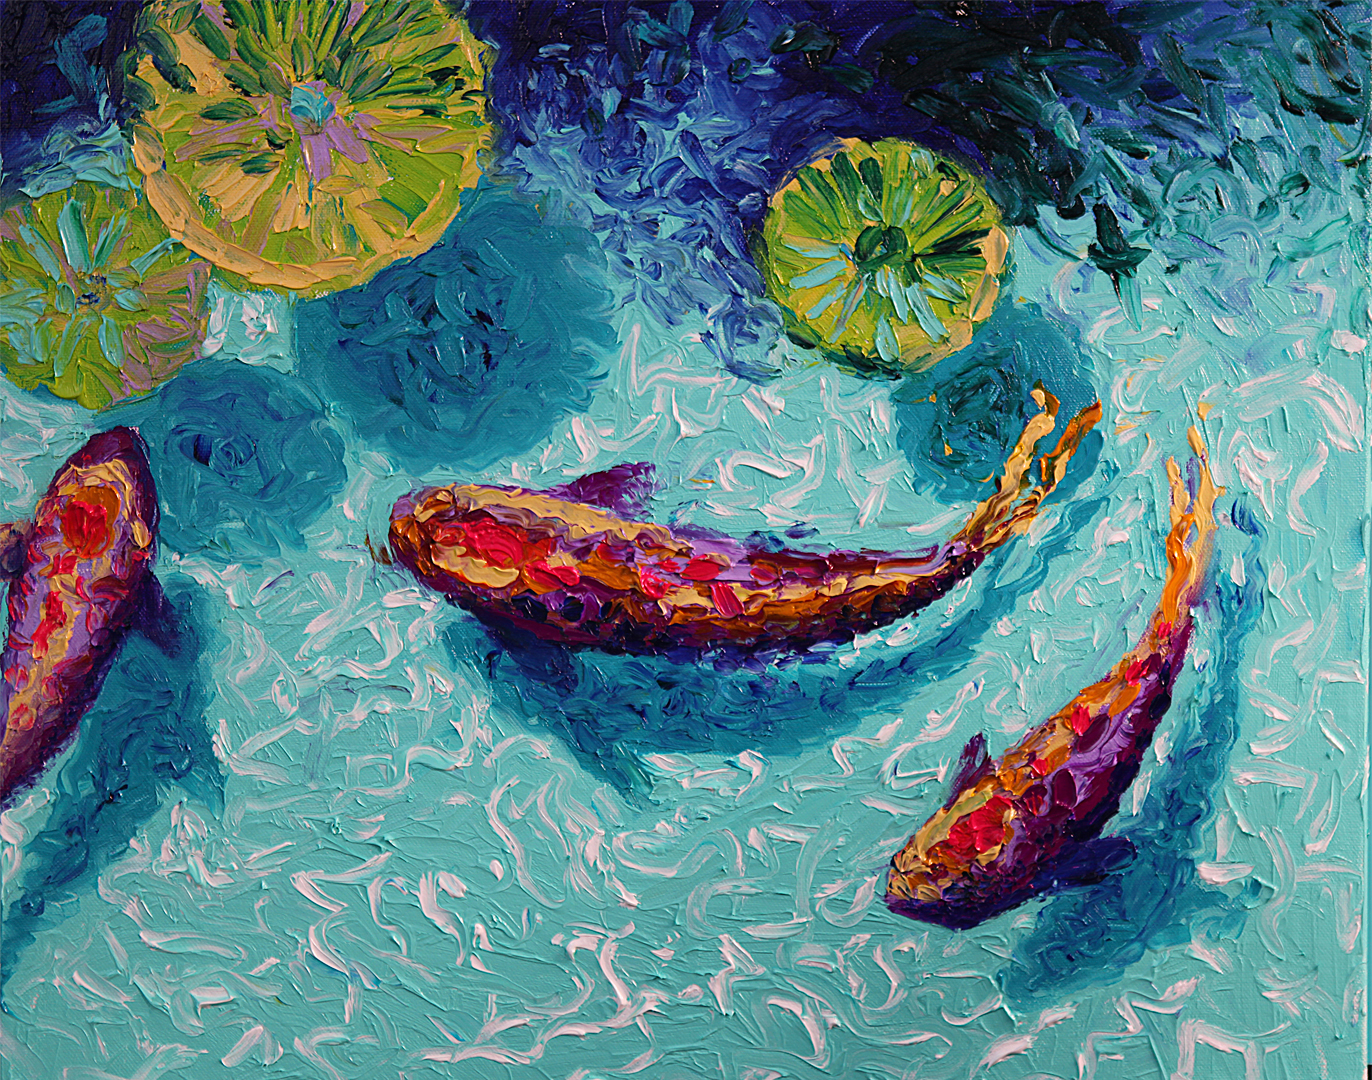 Finger Painting With Oils — IRIS